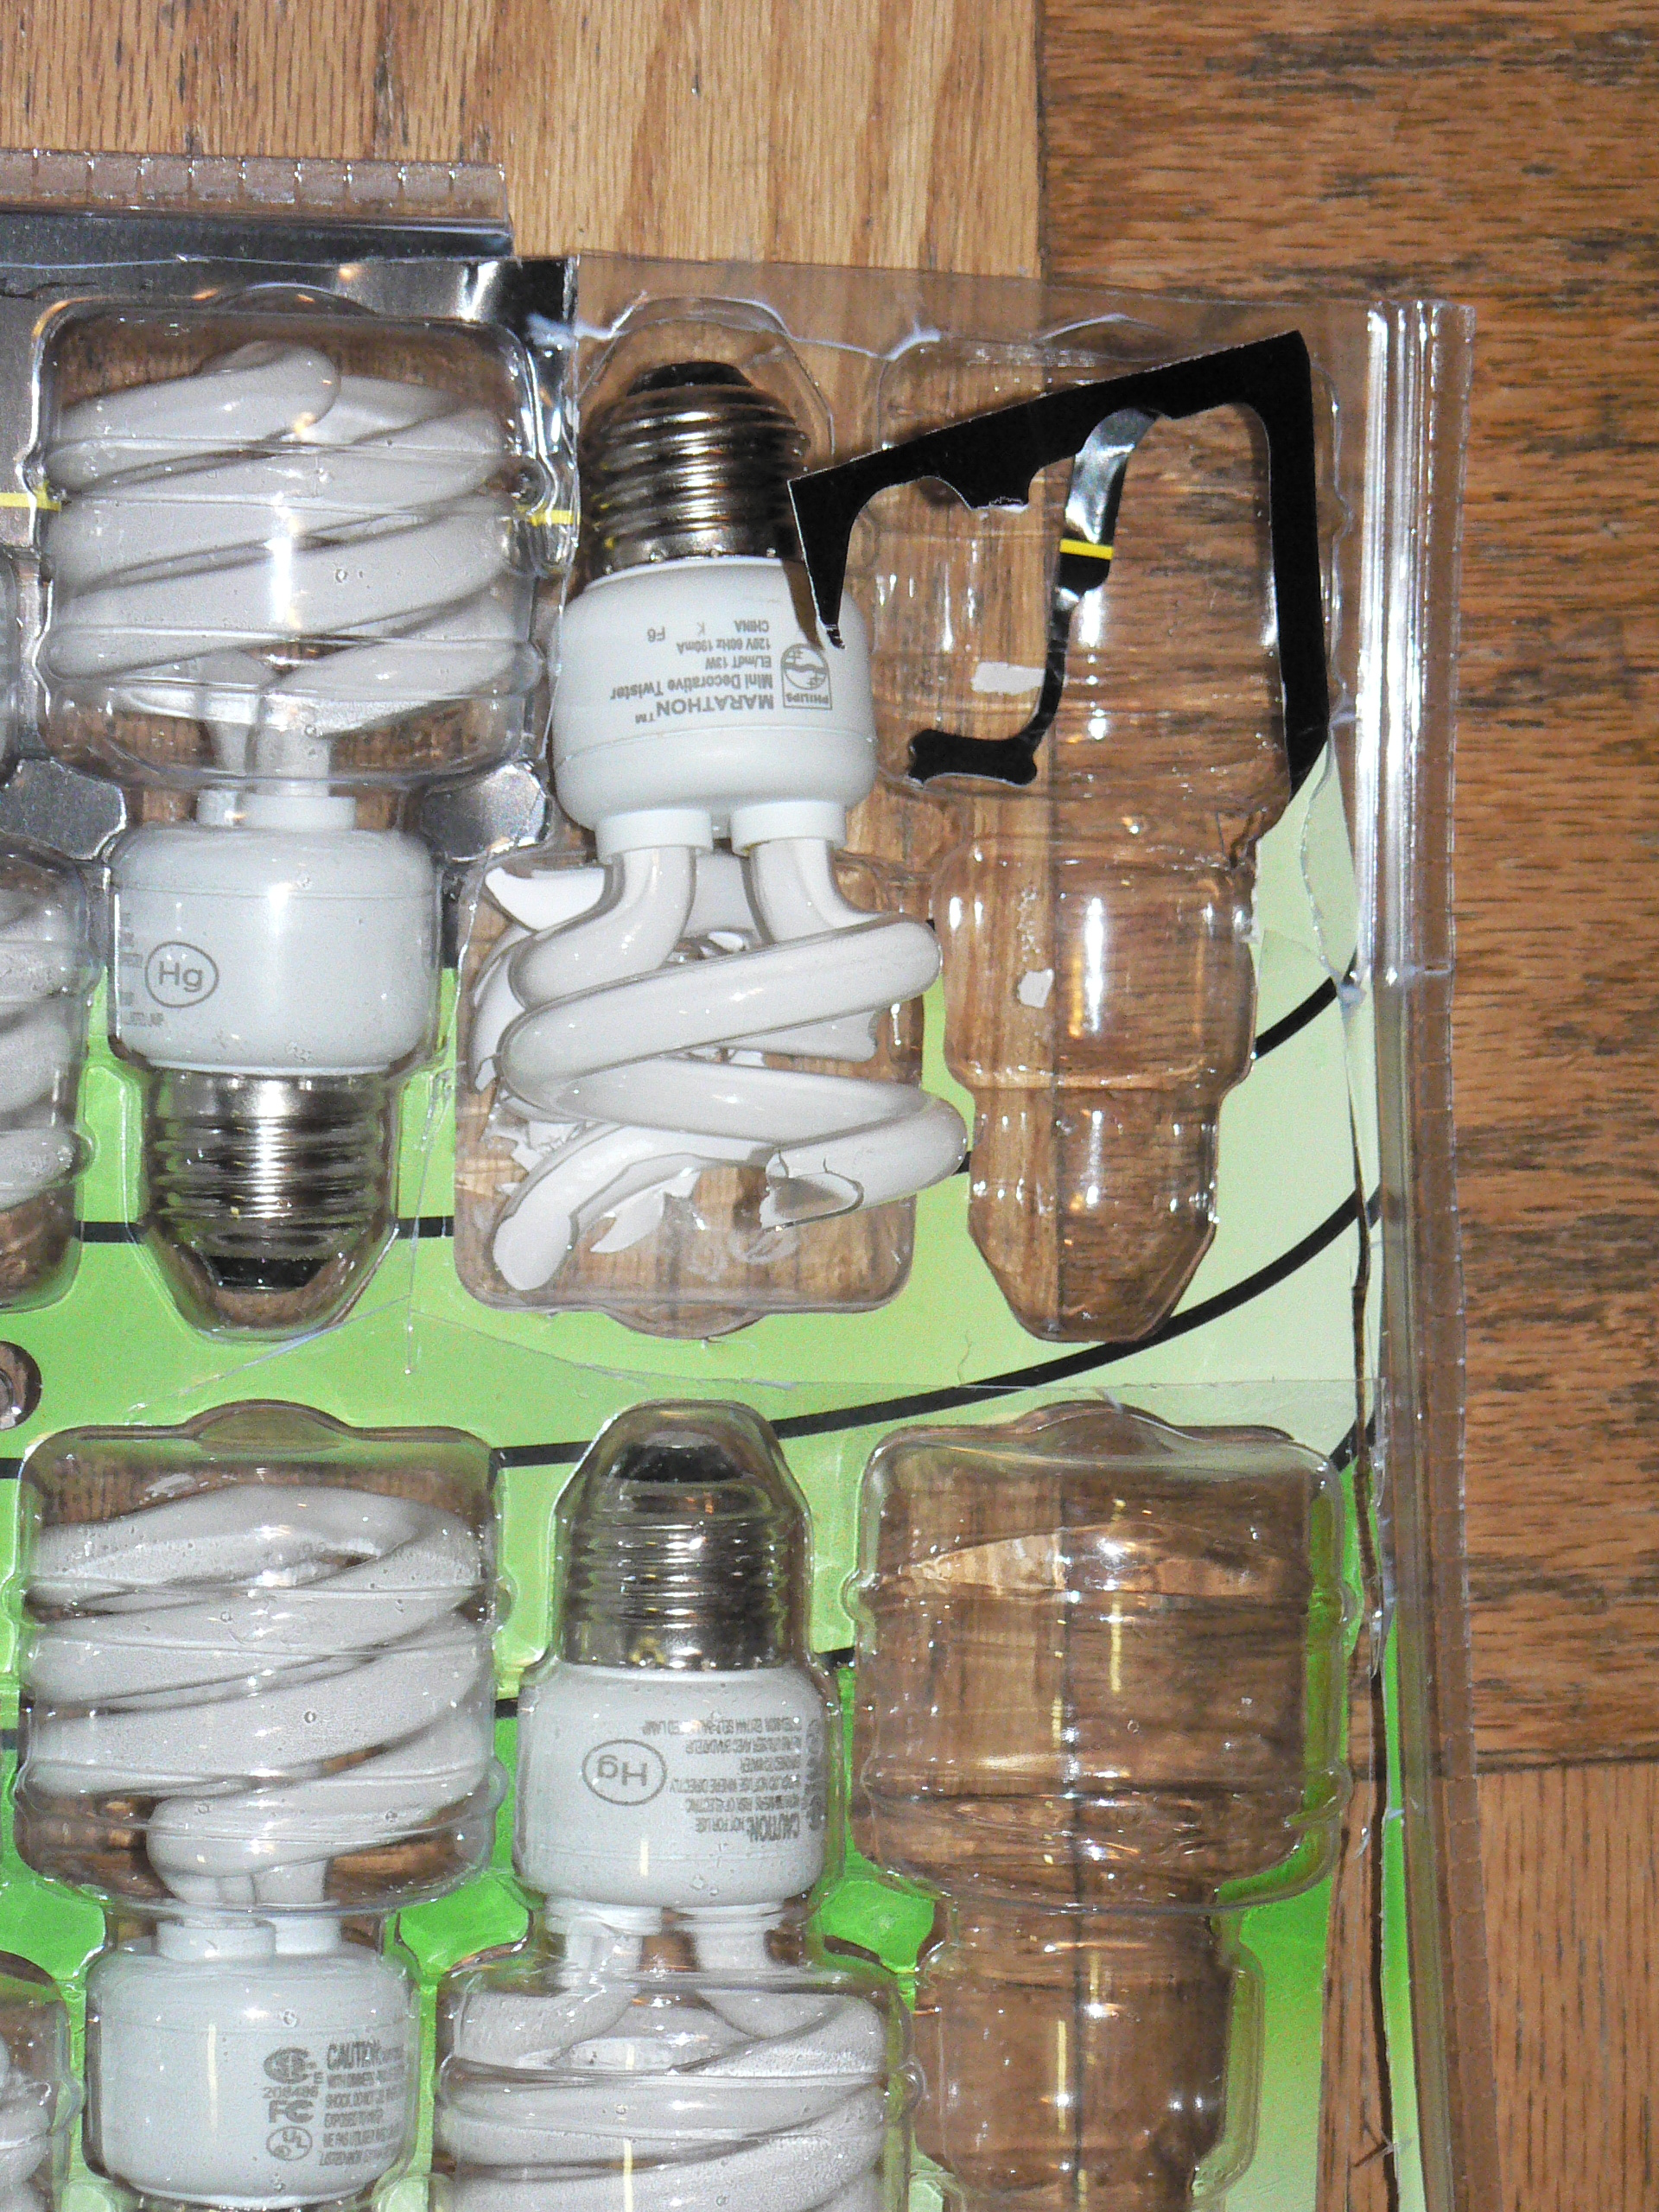 broken cfls a scary halloween story my plastic life in the meantime continuing the global warming energy conservation theme this week and needing to provide a little halloween scare i thought i d